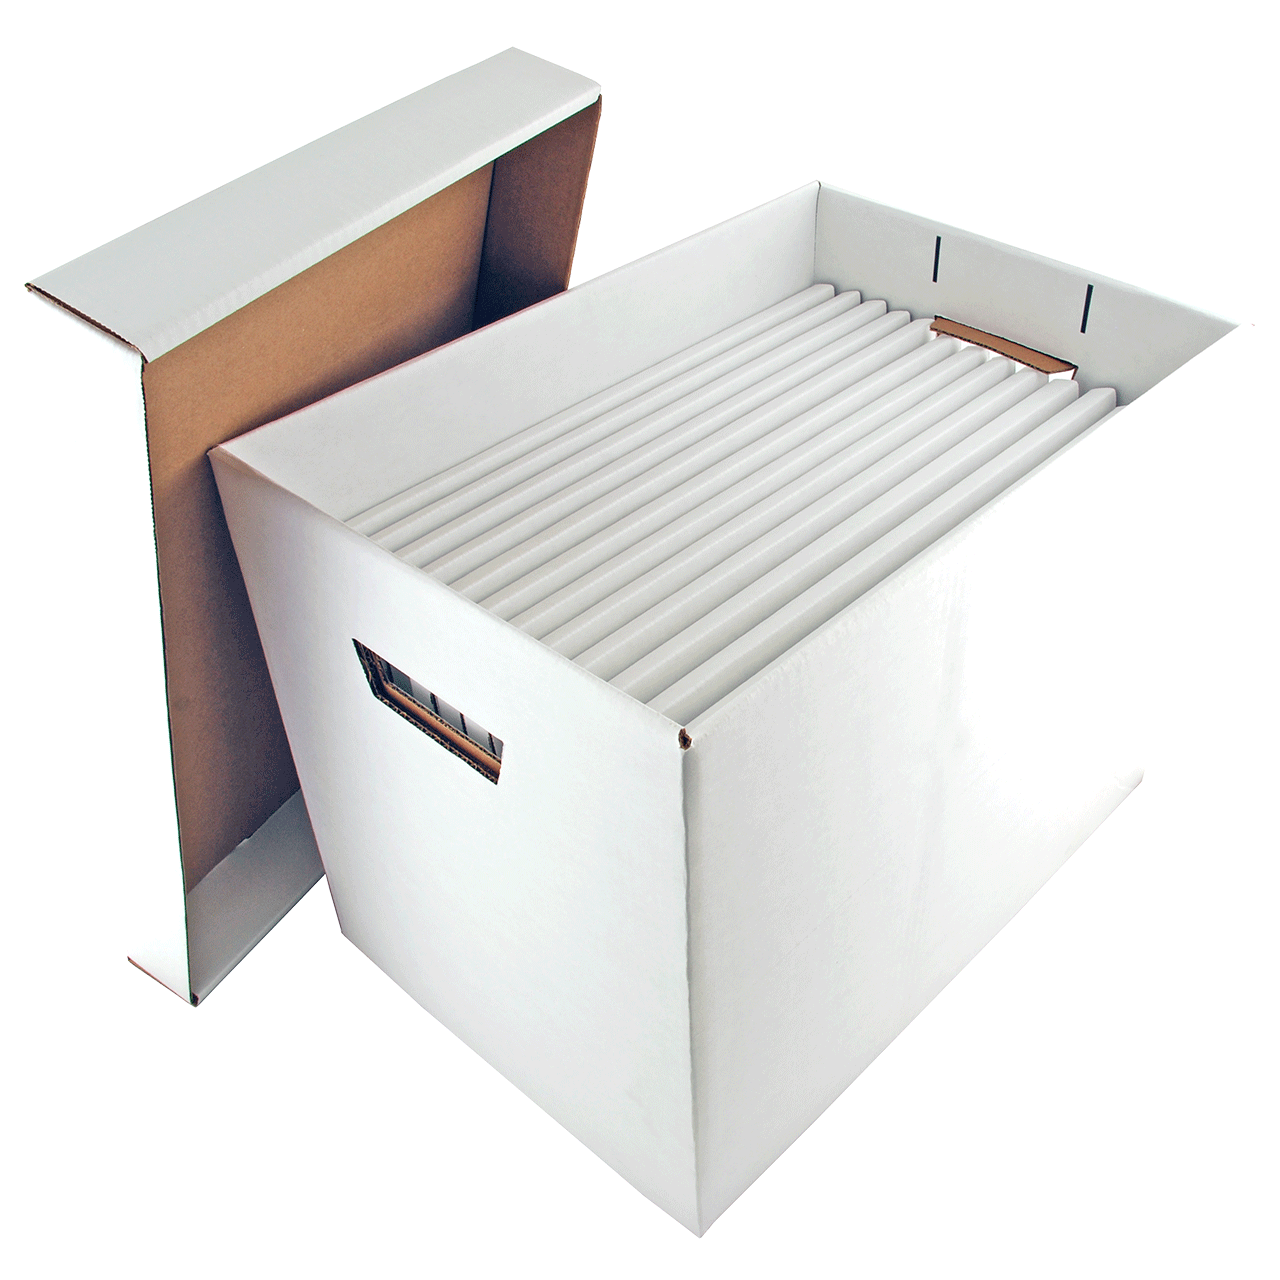 11 X 17 Vertical File Storage Container 11x17 Com Cardboard Storage Affordable Storage Storage